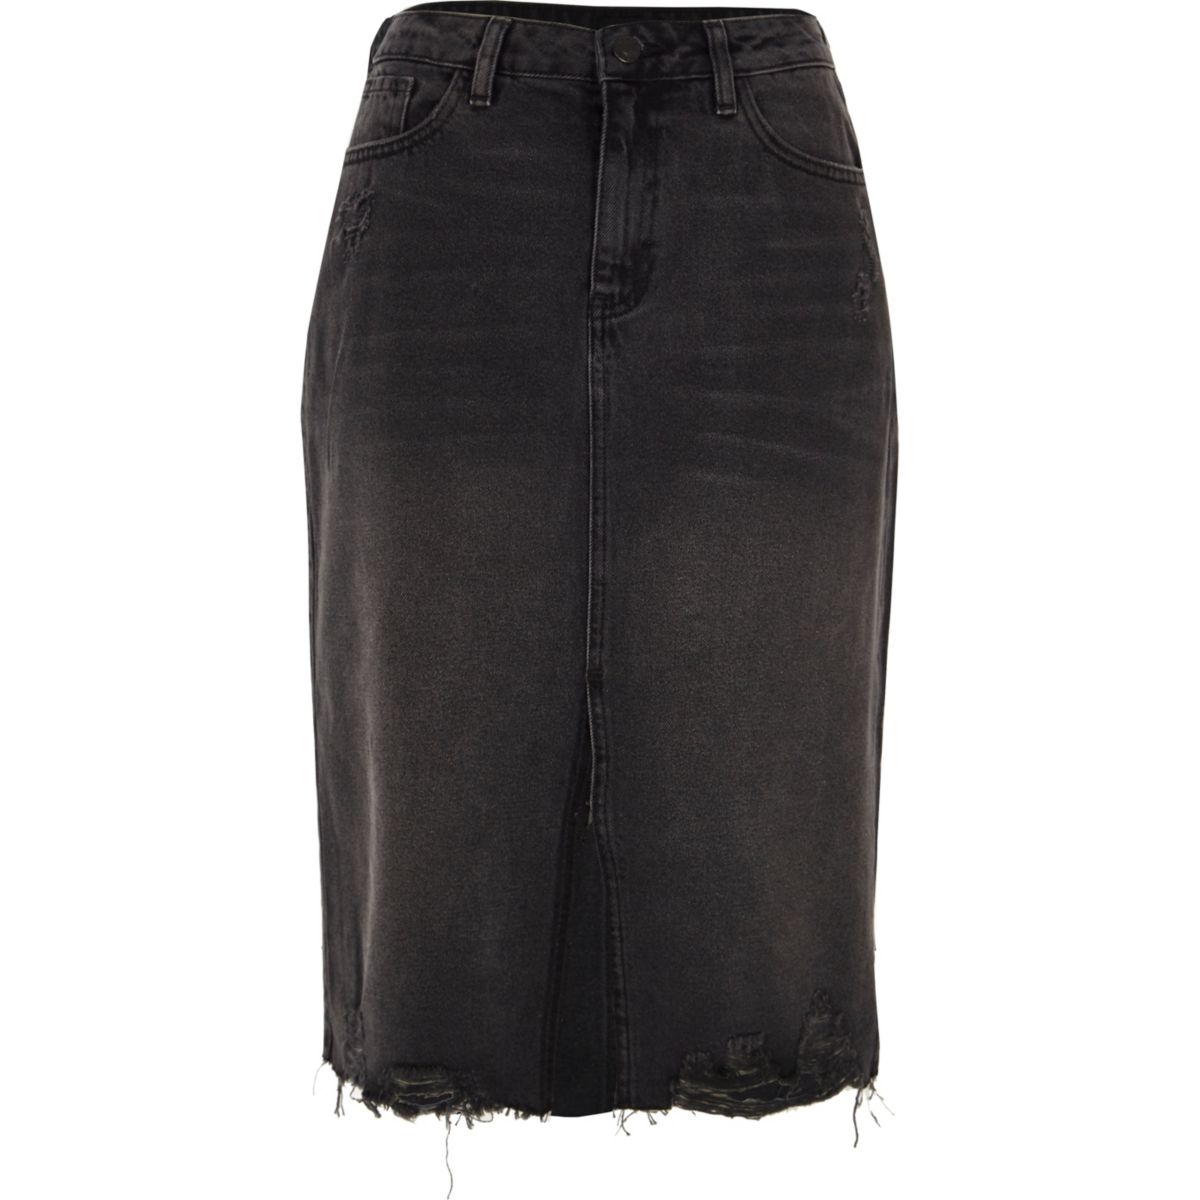 Black distressed split hem denim pencil skirt